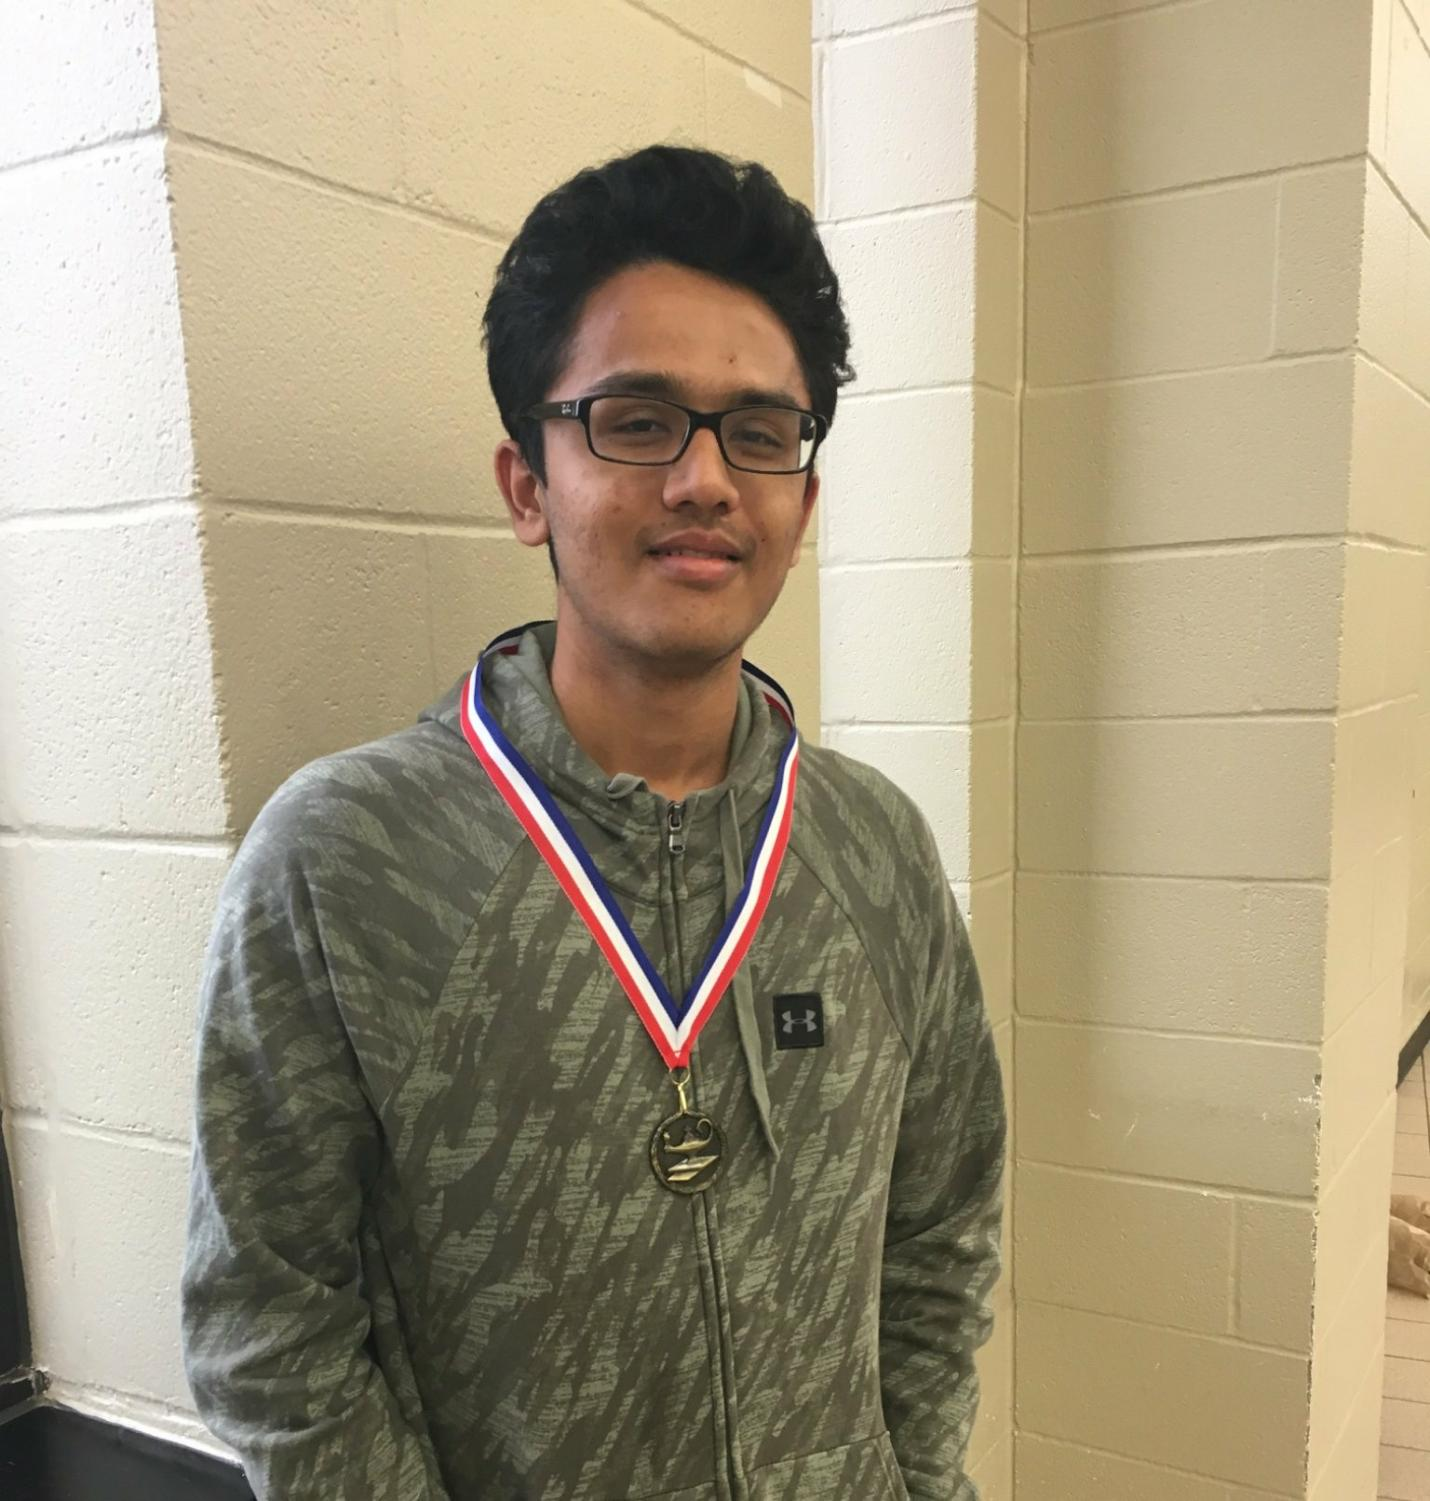 Hriman Shah won 1st place at a UIL practice meet at The Woodlands High School in February.